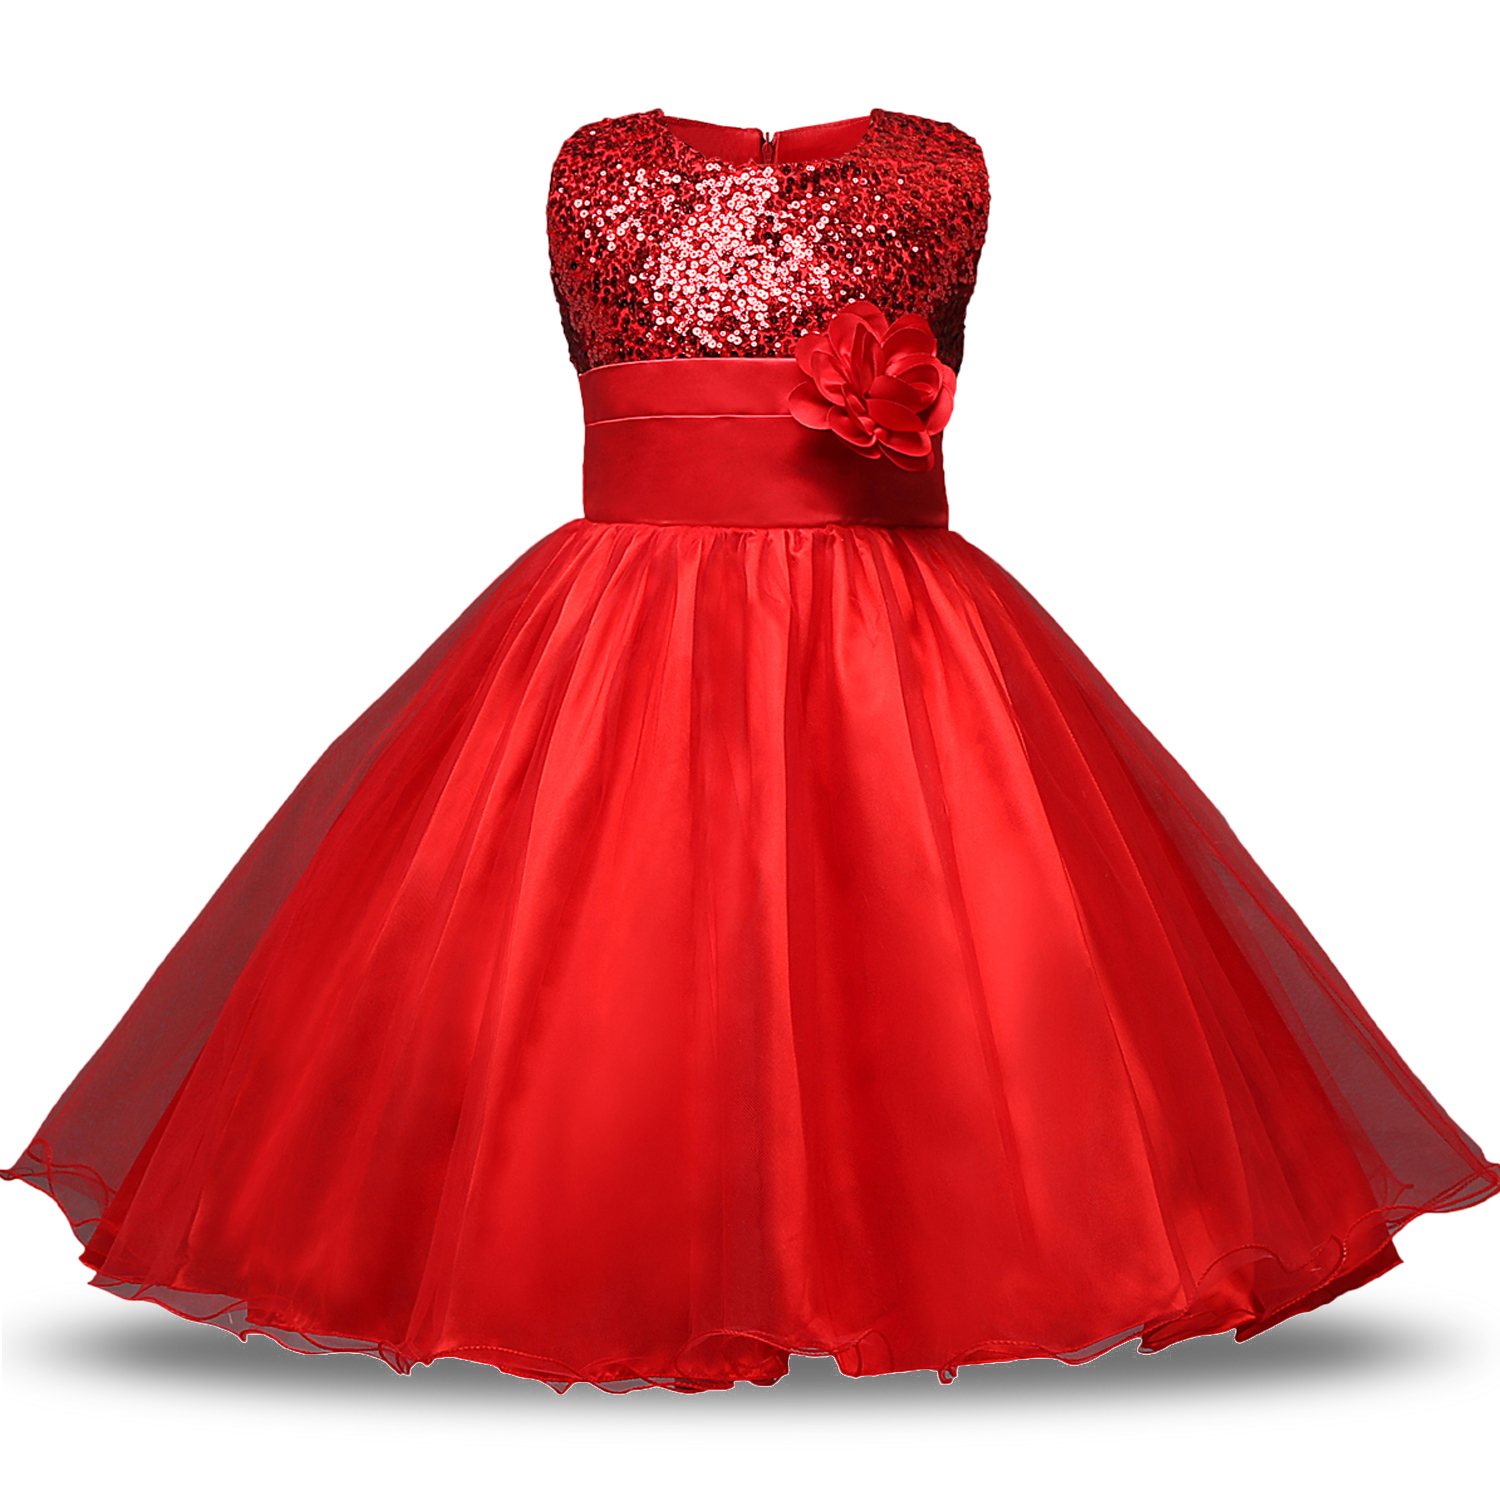 New Fashion Sequin Flower Girl Dress Party Princess Children Clothing Summer 2018 Wedding Girls Dresses Kids Birthday Clothes halilo new 2018 girls summer dress kids clothes girls party dress children clothing pink princess flower girl dresses hot sale